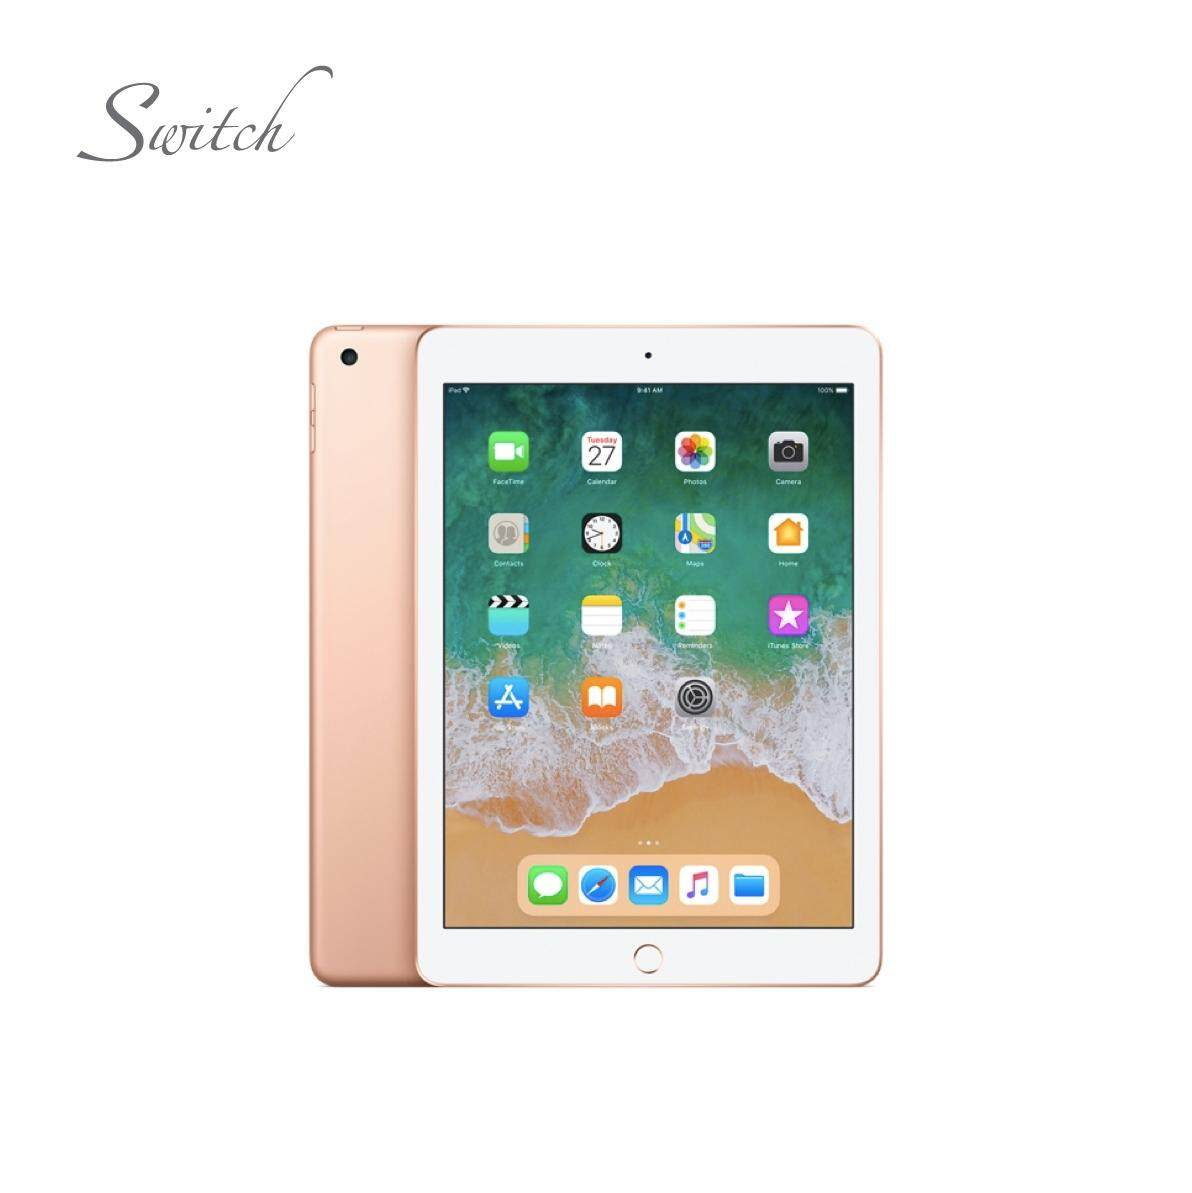 Apple Mobiles Tablets Price In Malaysia Best Ipad Air 64gb Space Grey 97 Inch Wi Fi Cellular 2018